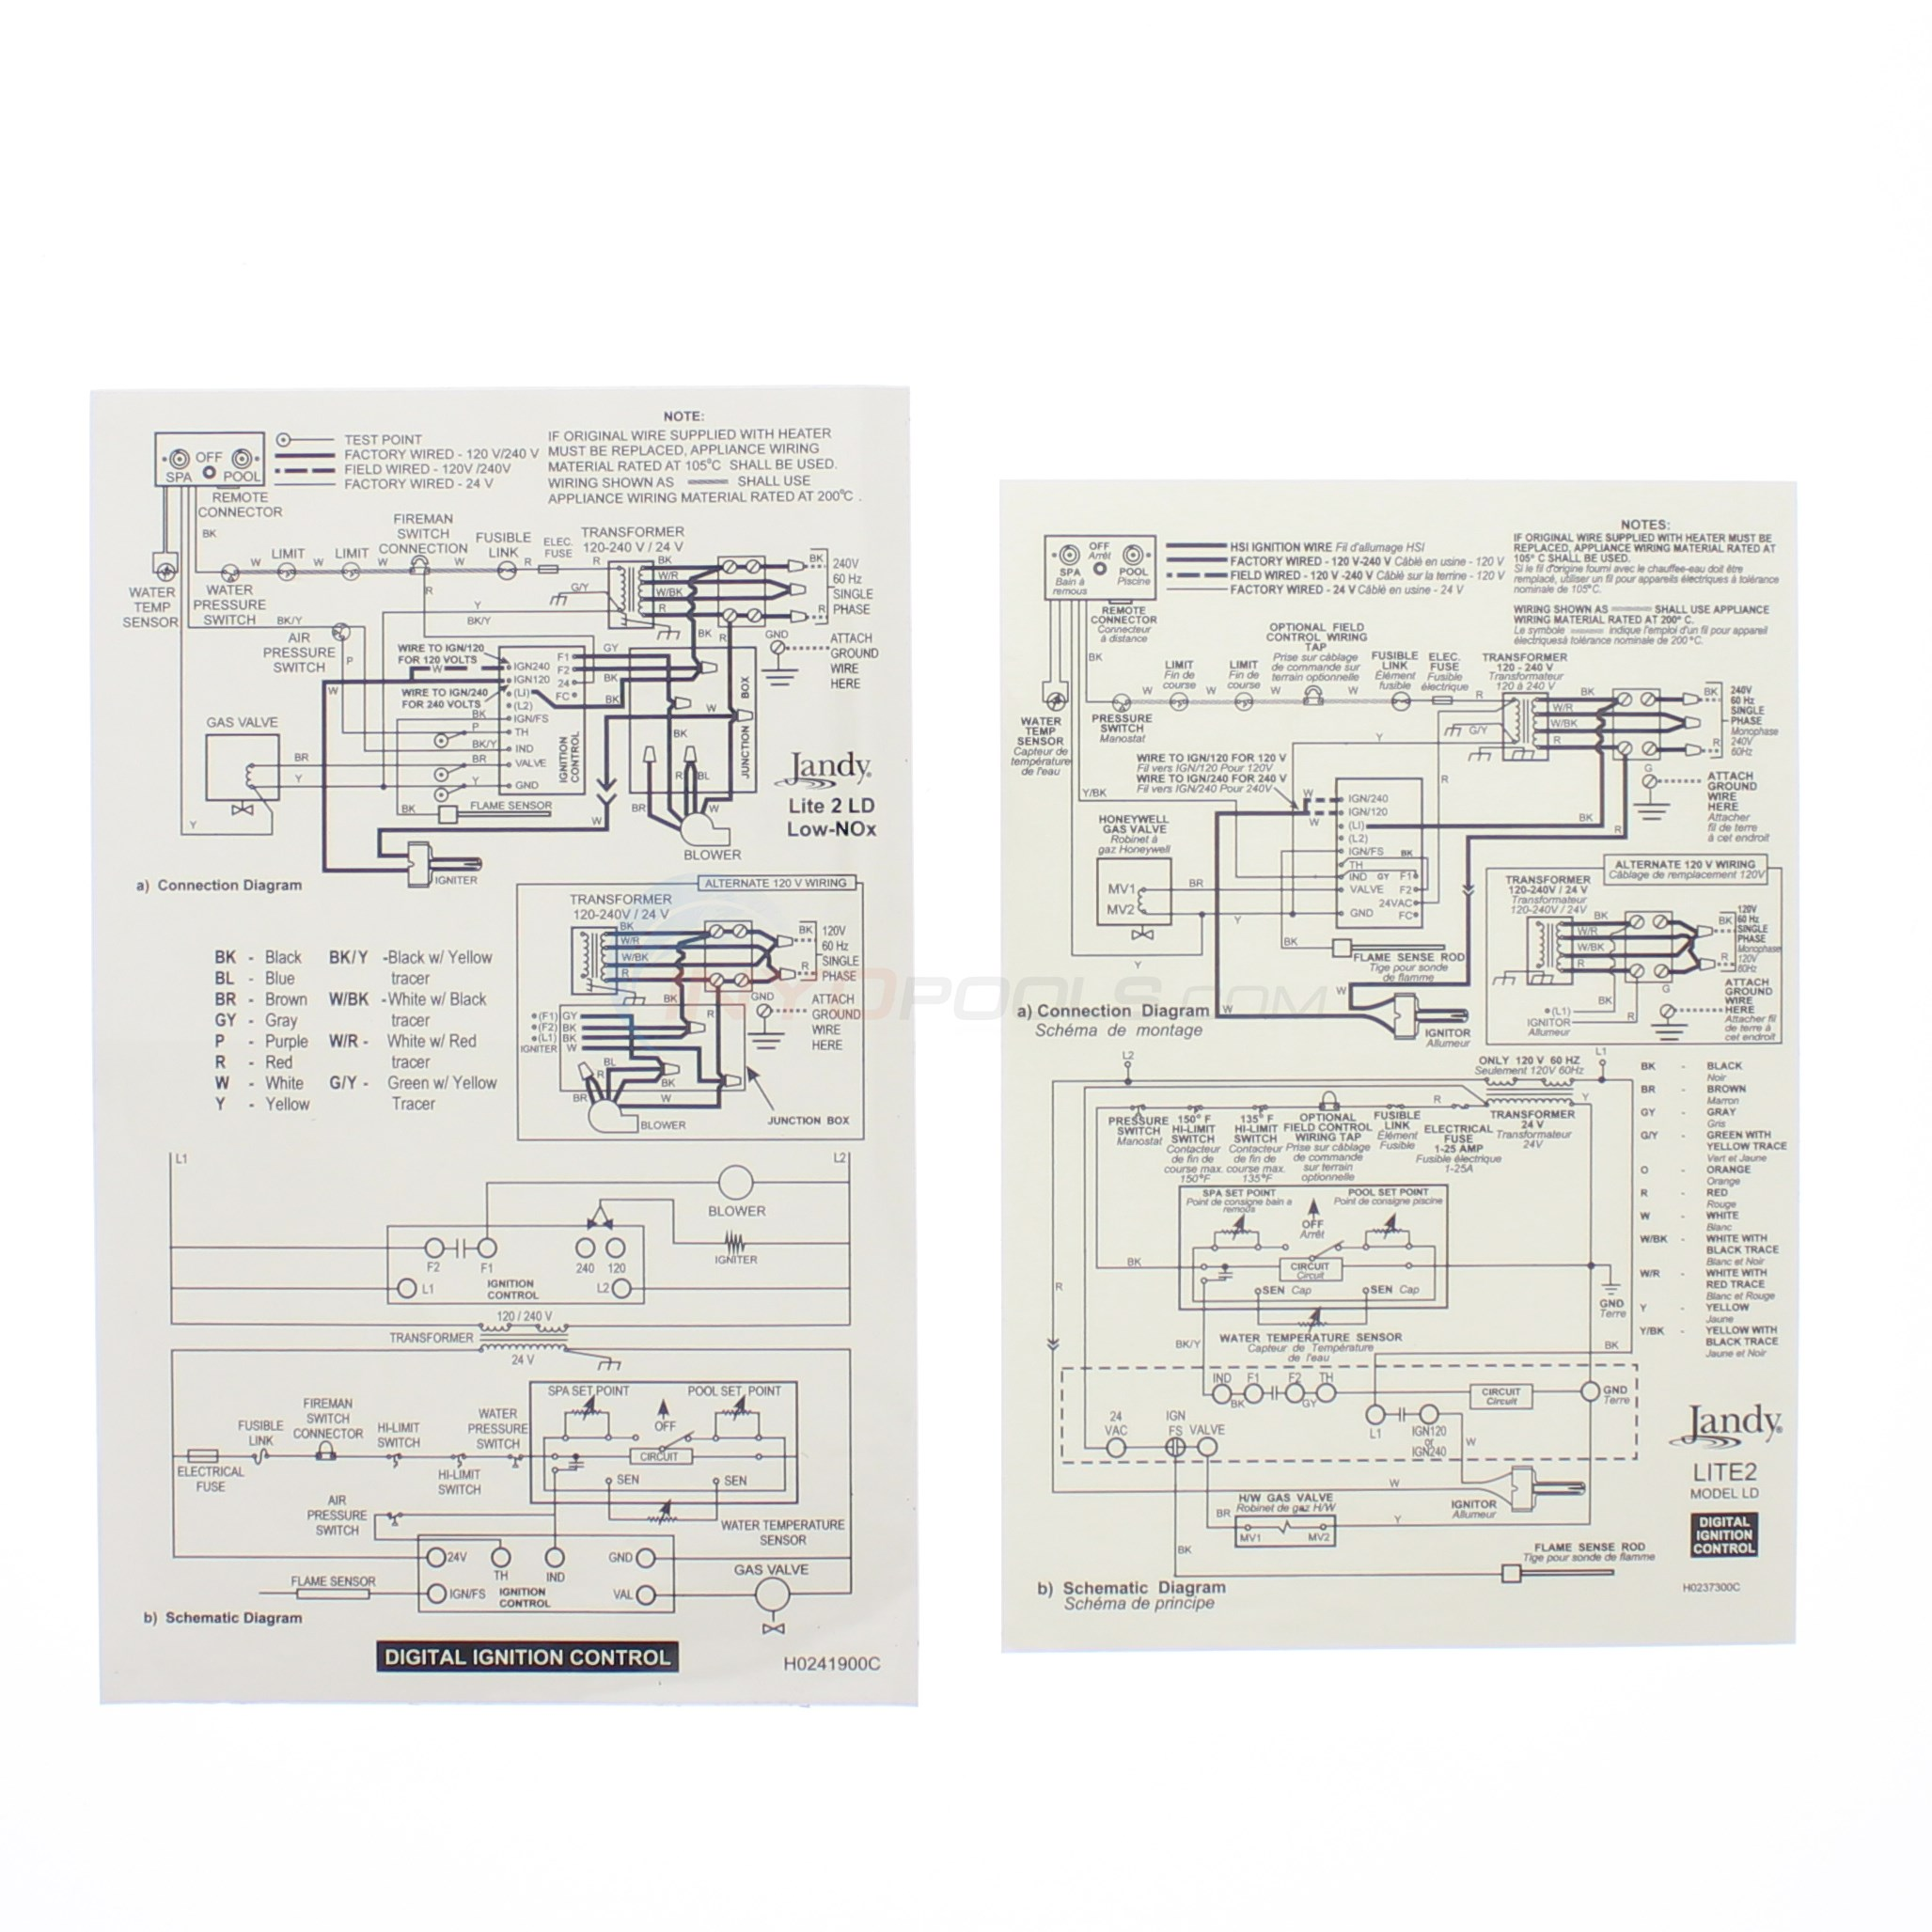 zodiac 6200 0301?format=jpg&scale=both&anchor=middlecenter&autorotate=true&mode=pad&width=650&height=650 zodiac ignition control assembly (r0408100) inyopools com fenwal ignition module wiring diagram at readyjetset.co